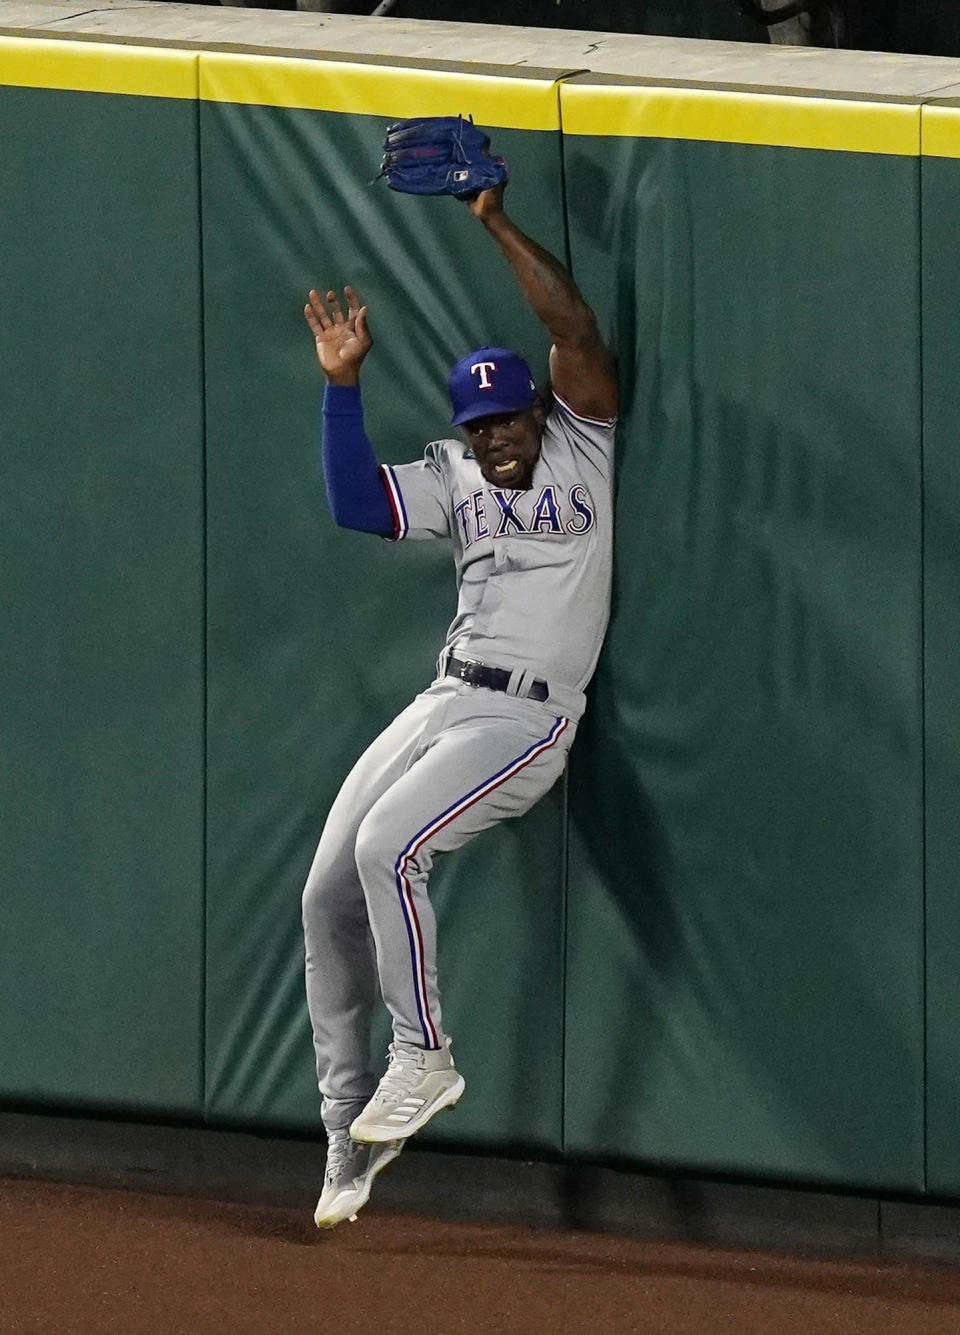 Texas Rangers right fielder Adolis Garcia hits the wall as he makes a catch on a ball hit by Los Angeles Angels' Shohei Ohtani during the fourth inning of a baseball game Monday, April 19, 2021, in Anaheim, Calif. (AP Photo/Mark J. Terrill)